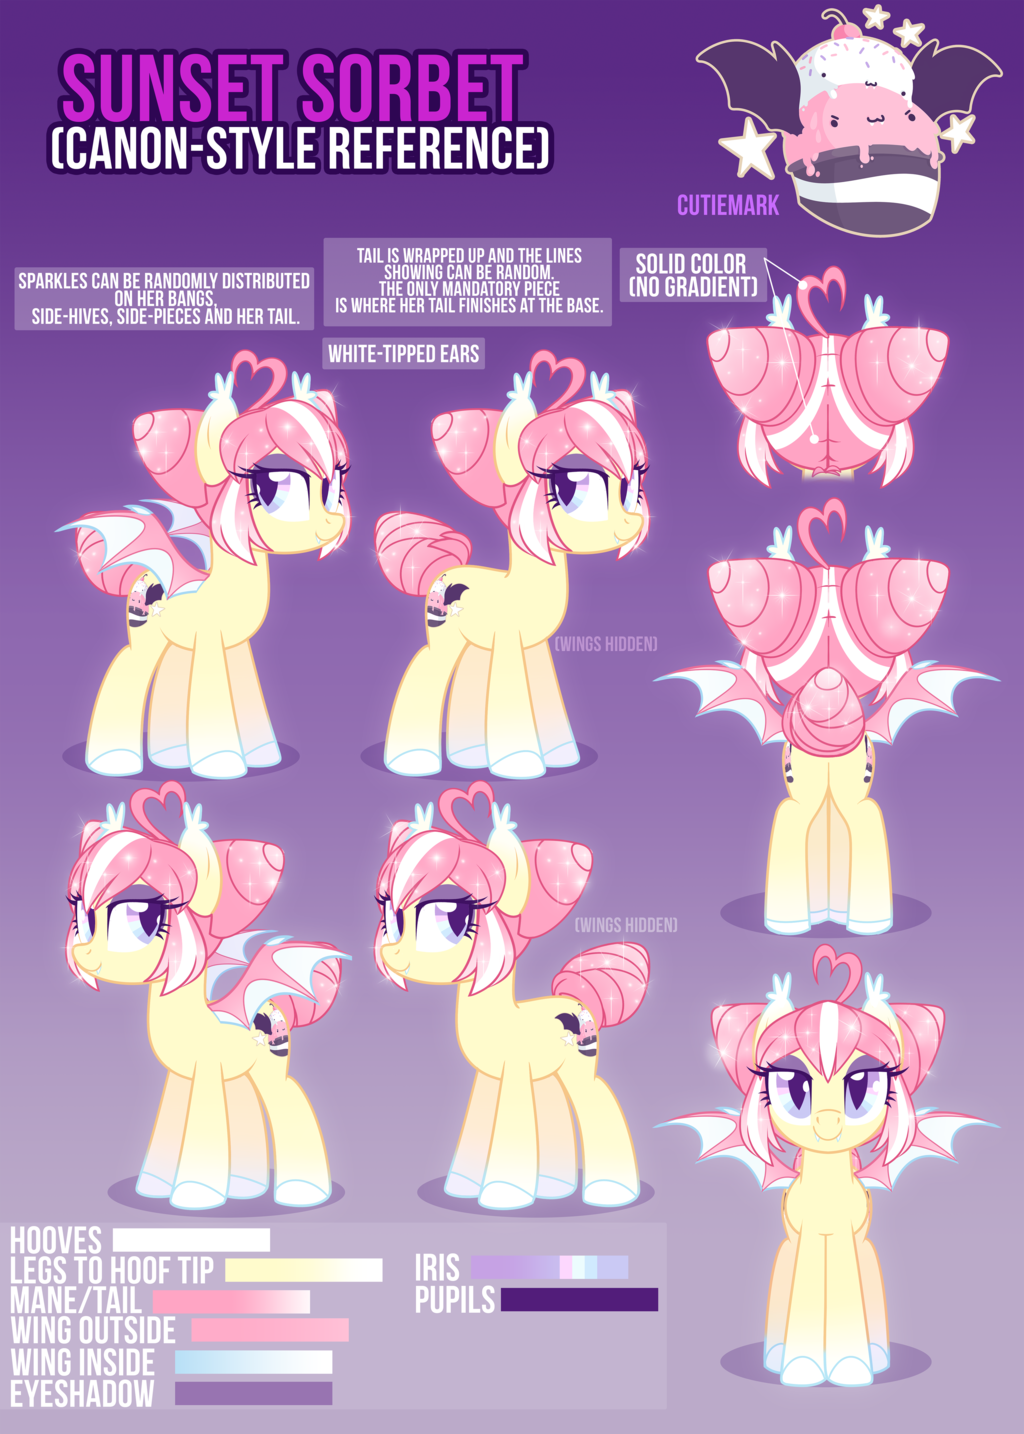 1860240 Artist Zombie Bat Pony Bat Pony Oc Female Mare Oc Oc Only Oc Sunset Sorbet Reference S My Little Pony Characters My Little Pony Drawing Pony